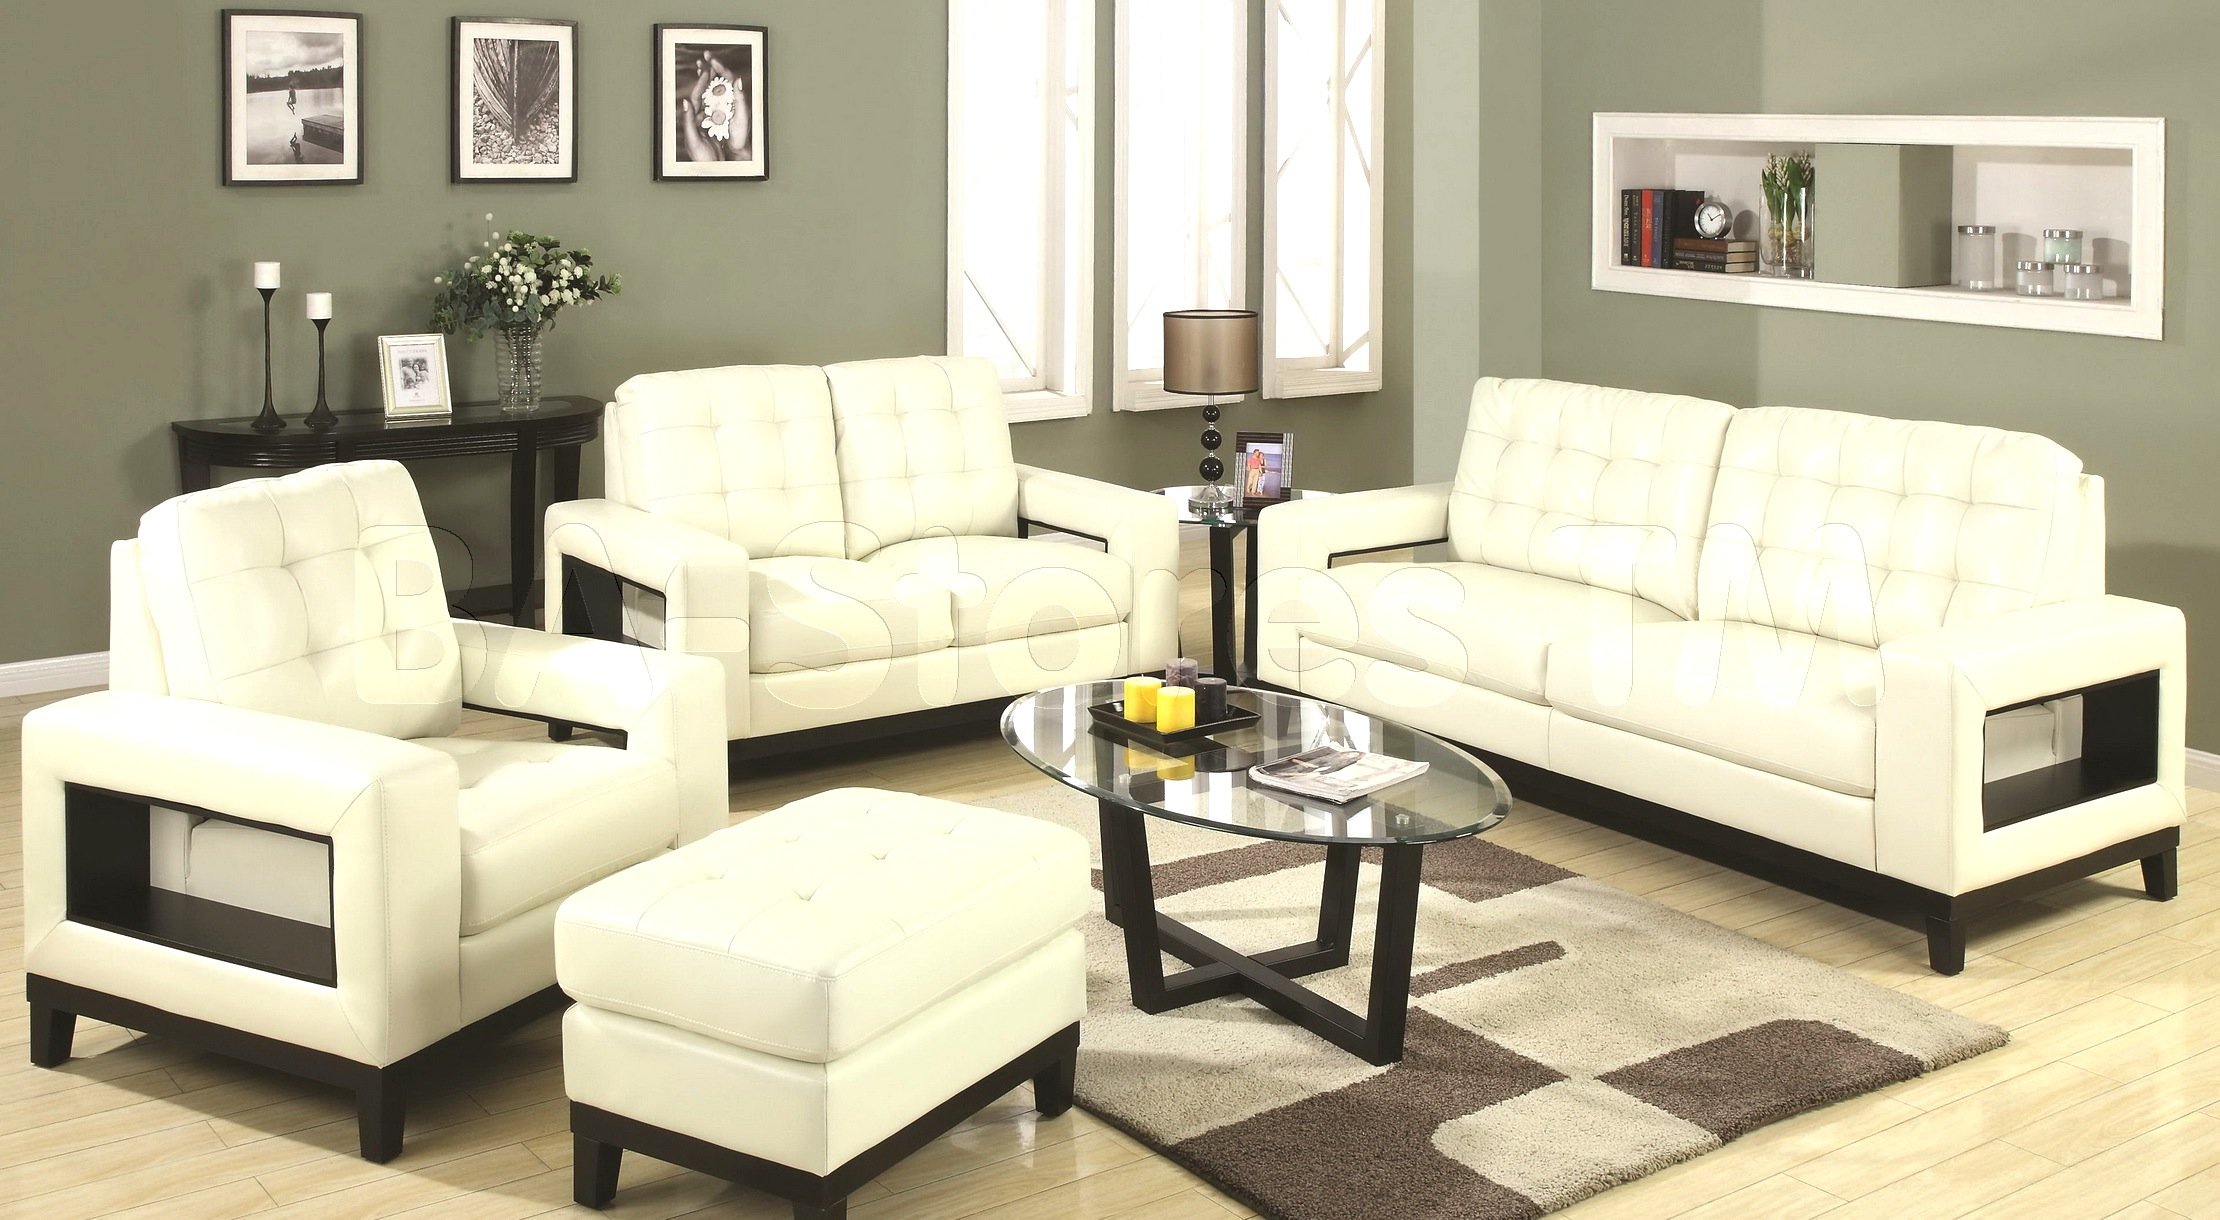 Sofa Sets In Living Room 25 Latest Sofa Set Designs For Living Room Furniture Ideas Hgnv Com